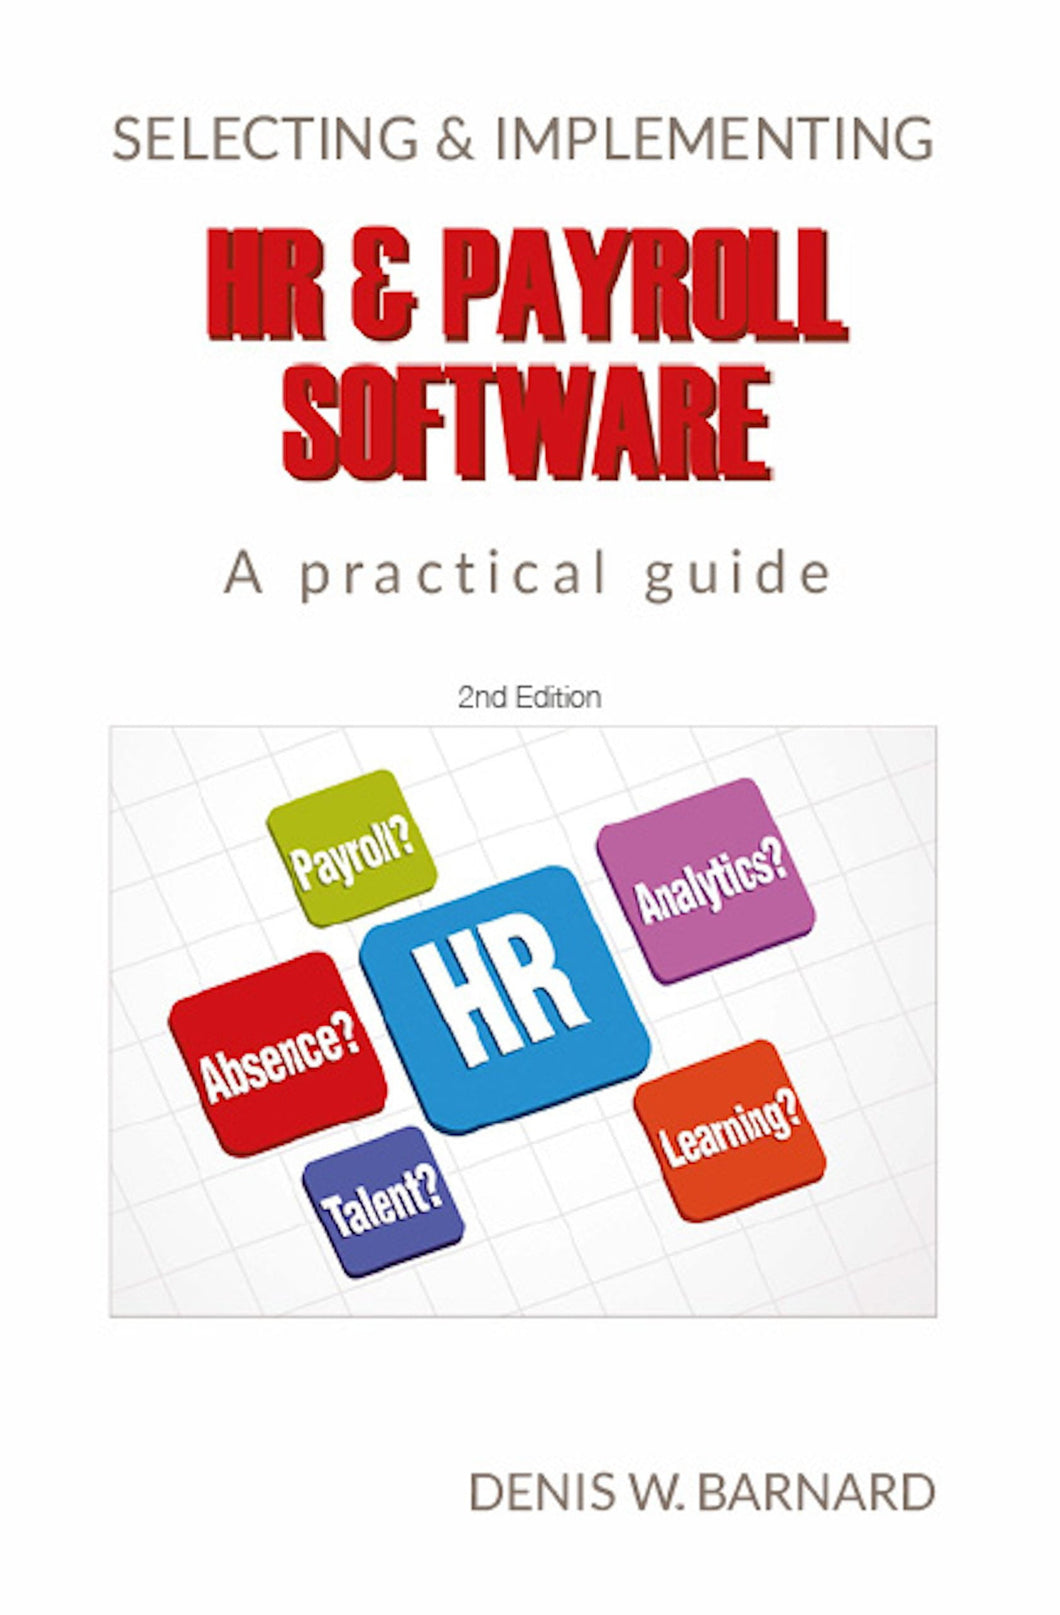 Selecting & Implementing HR & Payroll Software: A Practical Guide